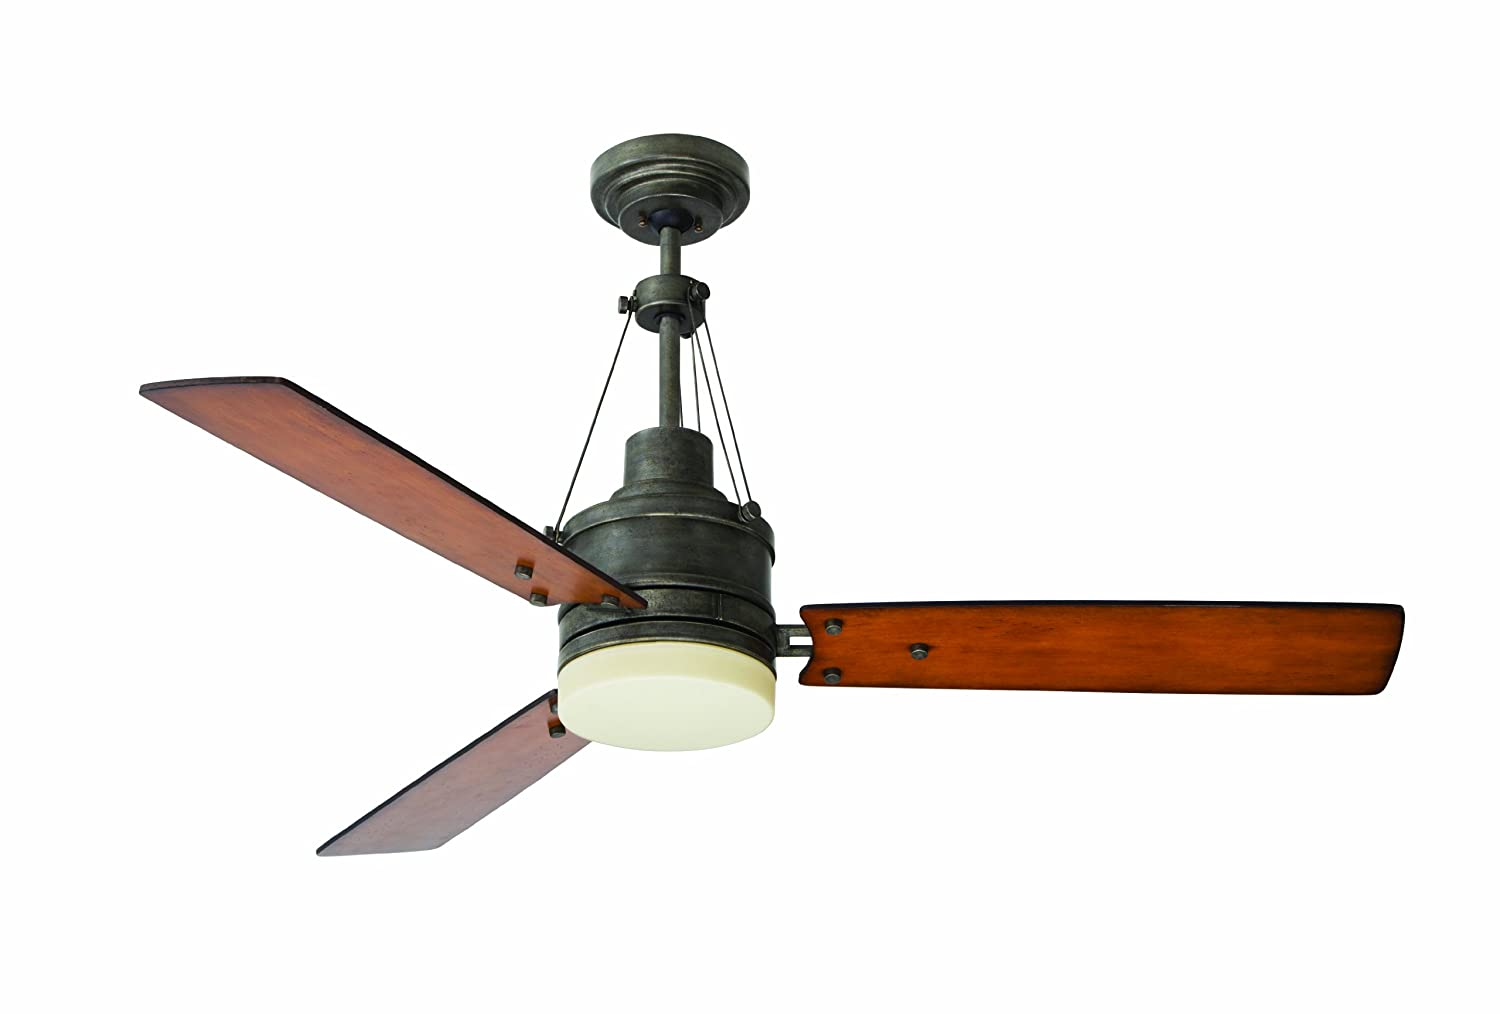 Emerson Ceiling Fans CF205VS Highpointe Modern Ceiling Fan With Light And  Remote, 54 Inch Blades, Vintage Steel Finish, 51 To 55 Inches     Amazon.com